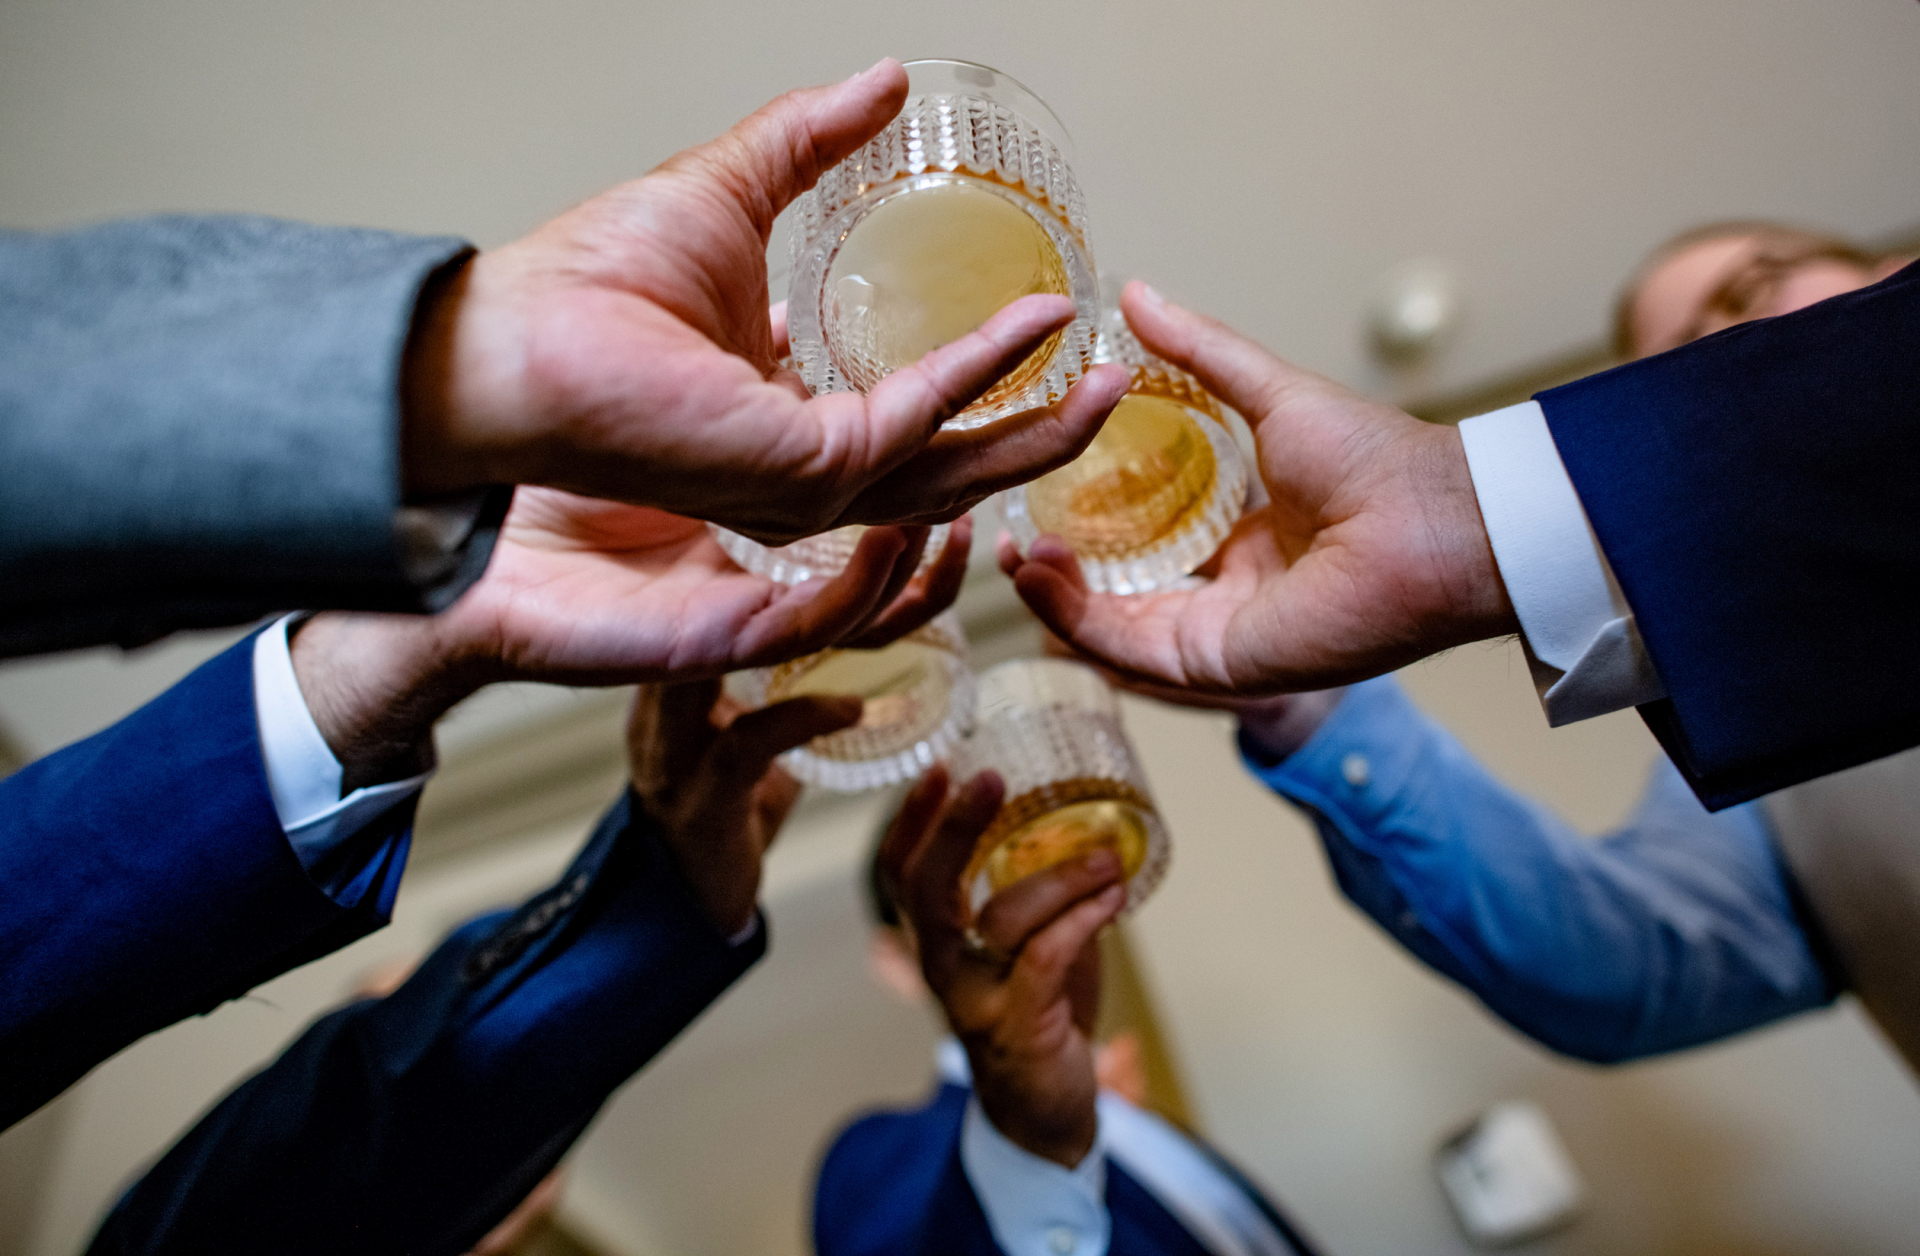 Real Wedding Image from a Scottsdale Wedding Venue | The groom's friends toast him and his new bride